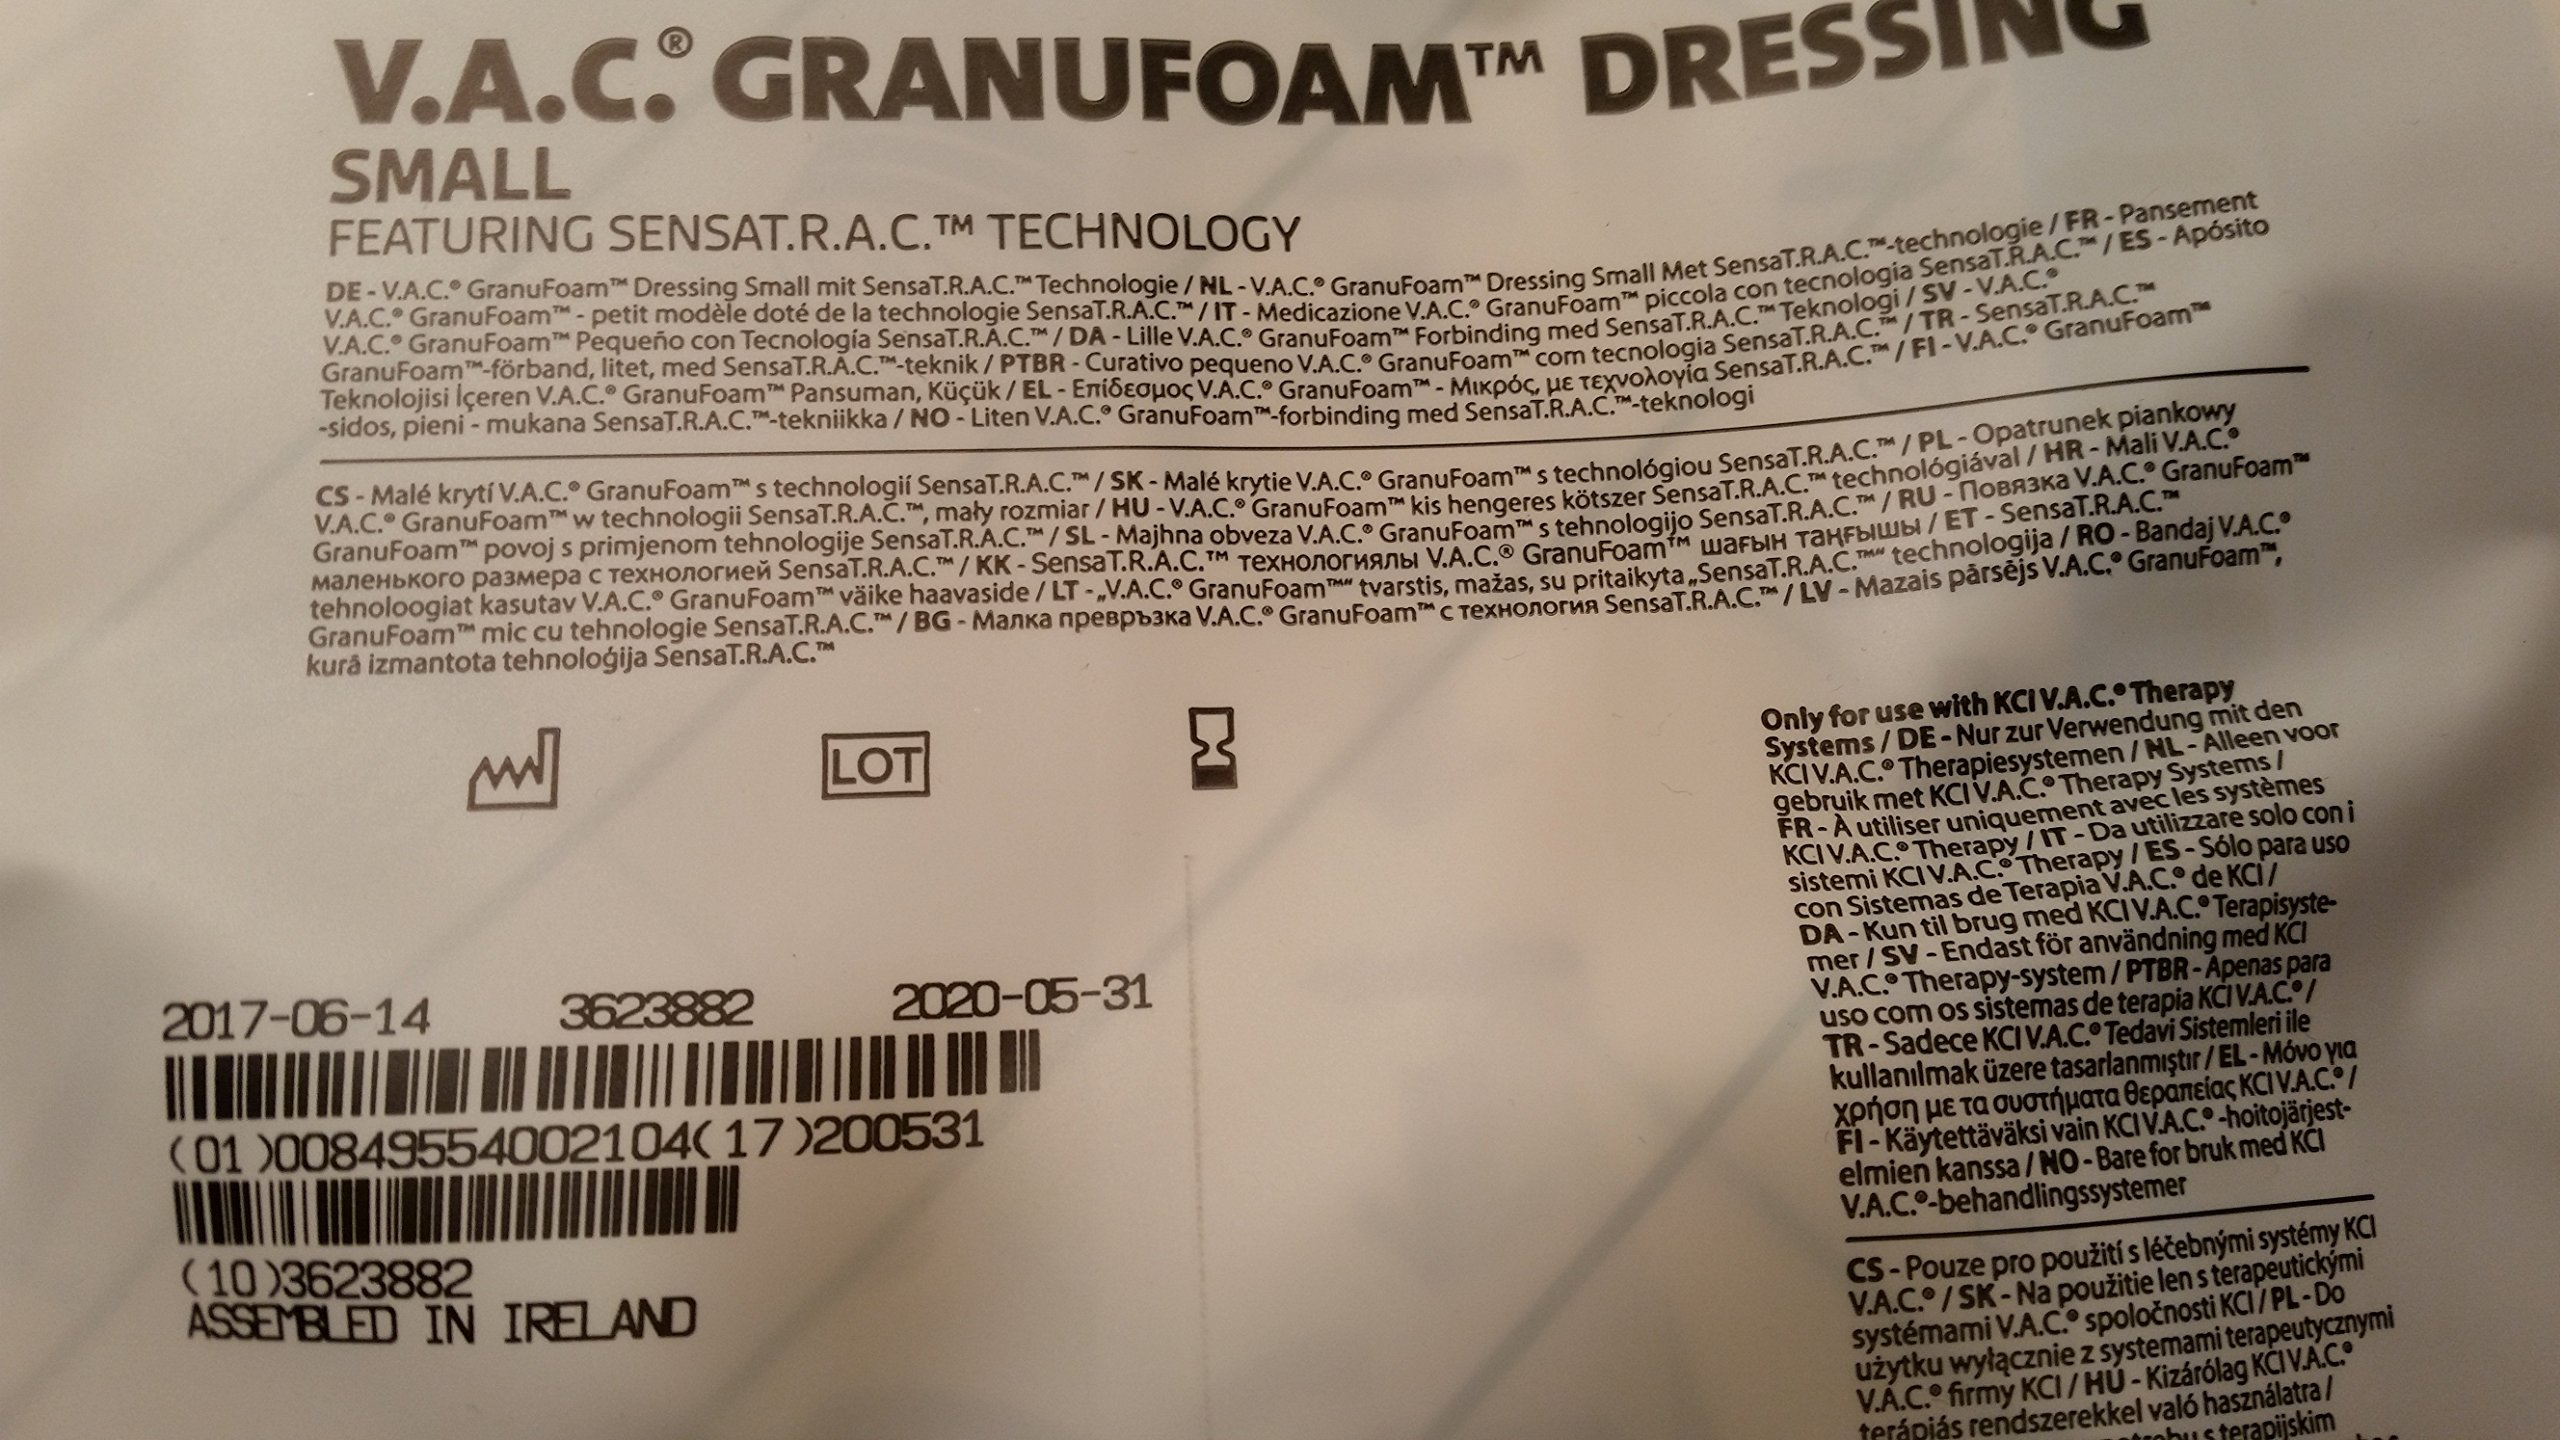 KCI V.A.C.GRANUFOAM DRESSING [SMALL] M8275051/5 by KCI Medical Products (Image #2)